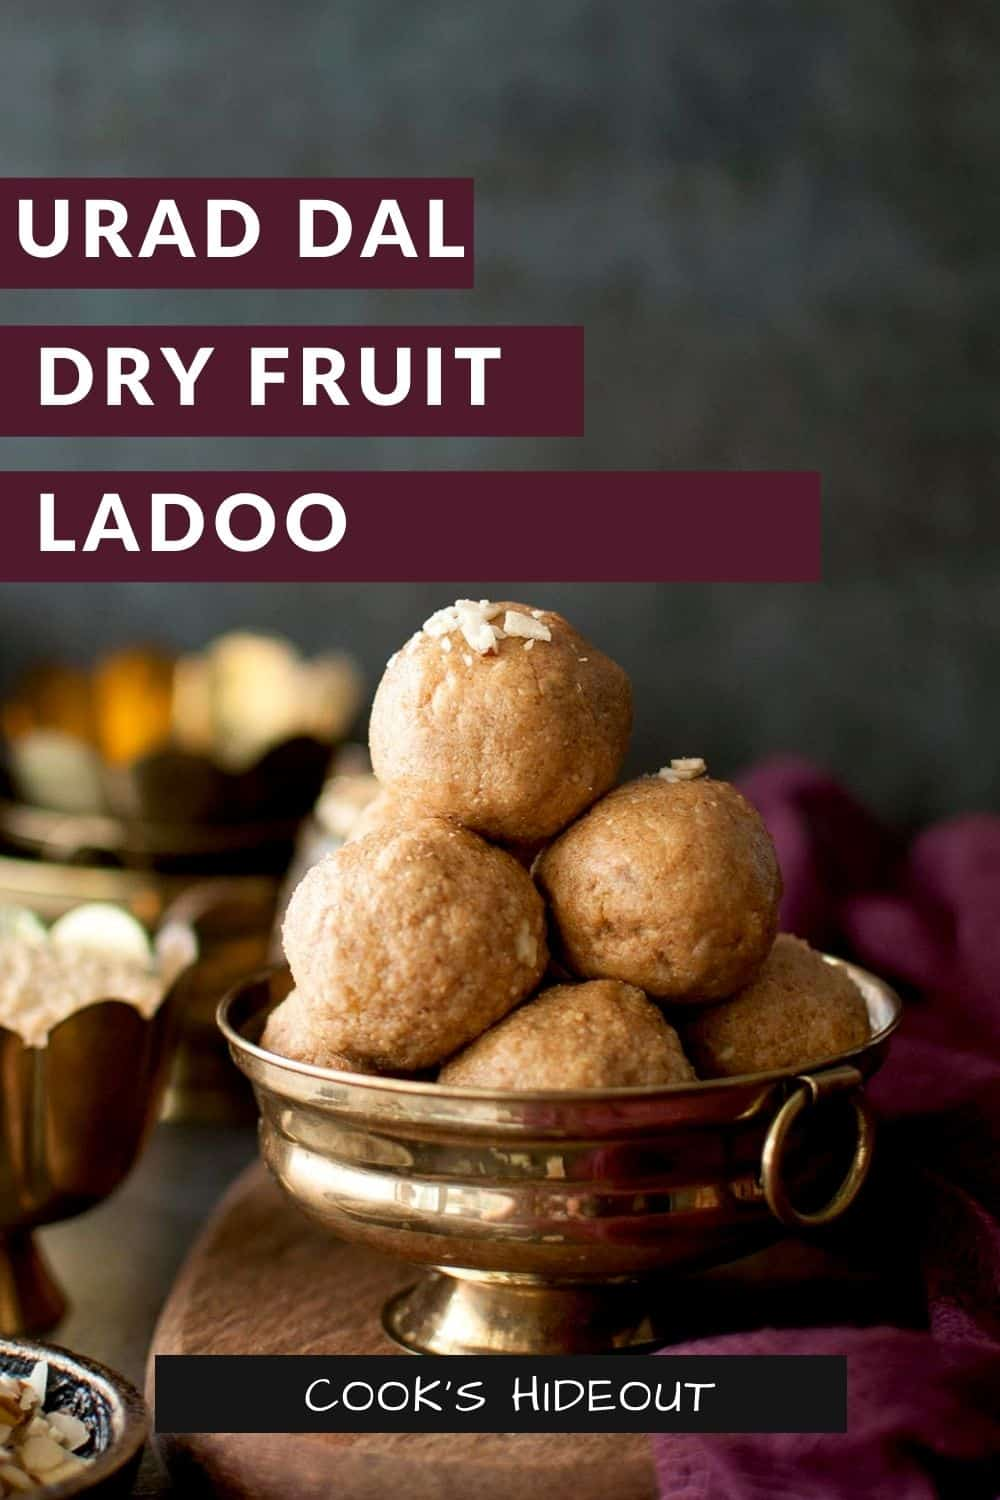 Golden bowl with a stack of laddu